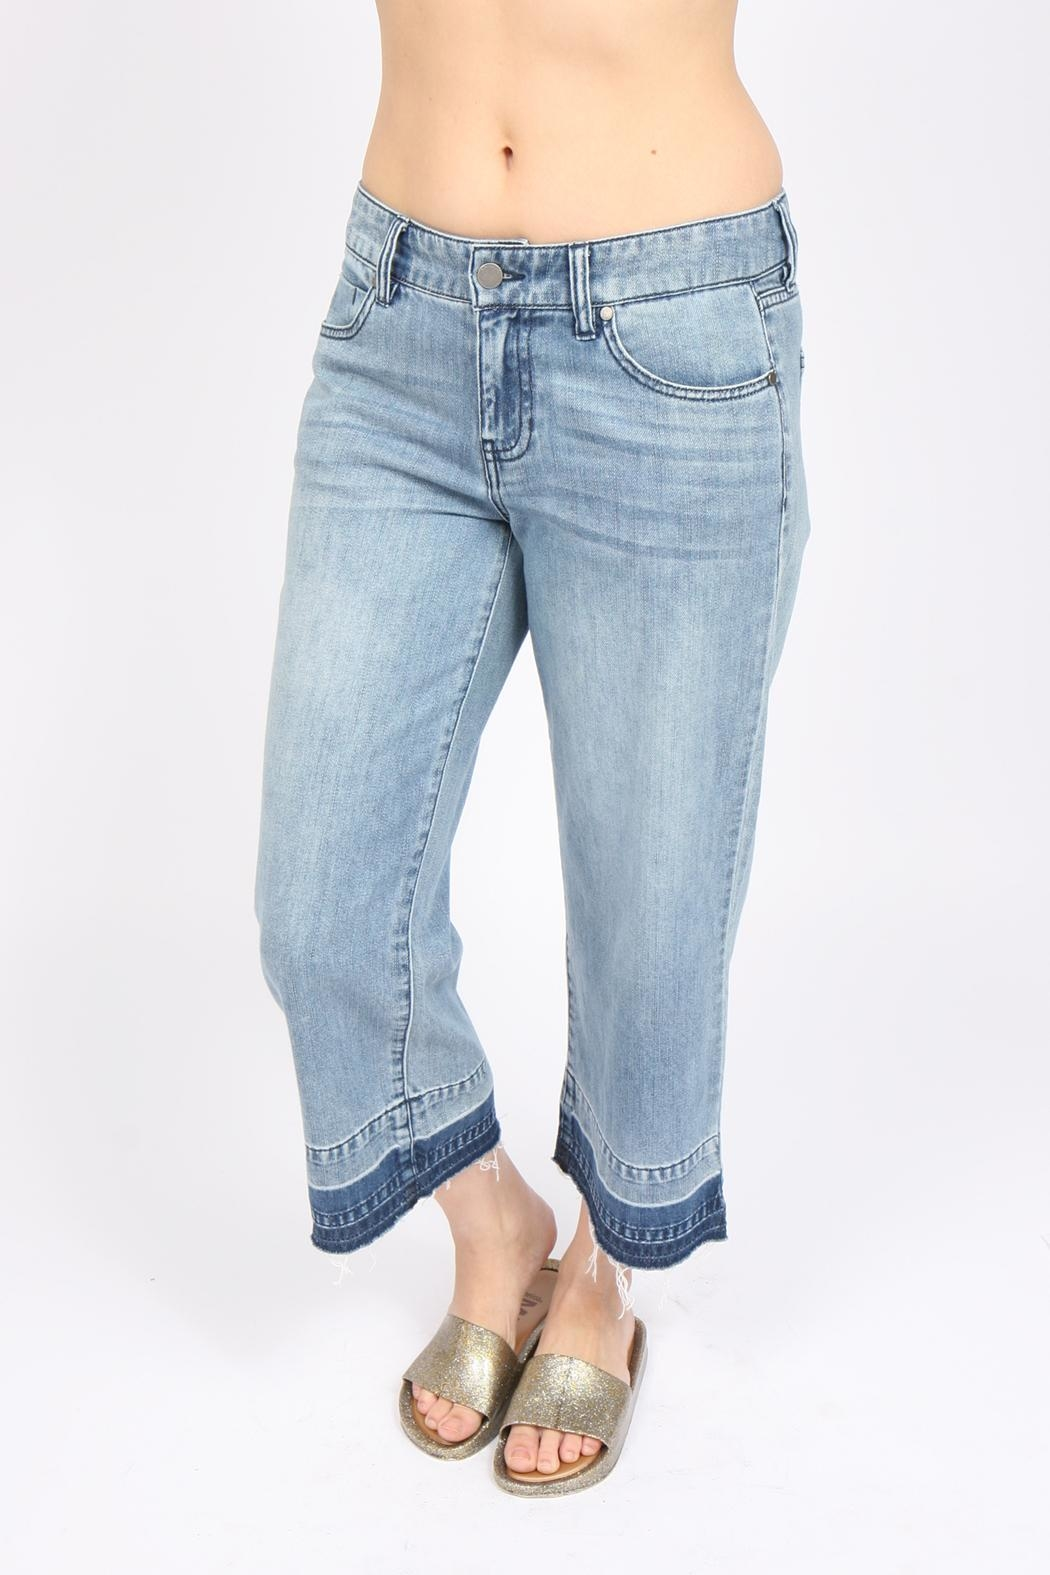 Liverpool Jeans Company Wide-Leg Cropped Jean - Side Cropped Image